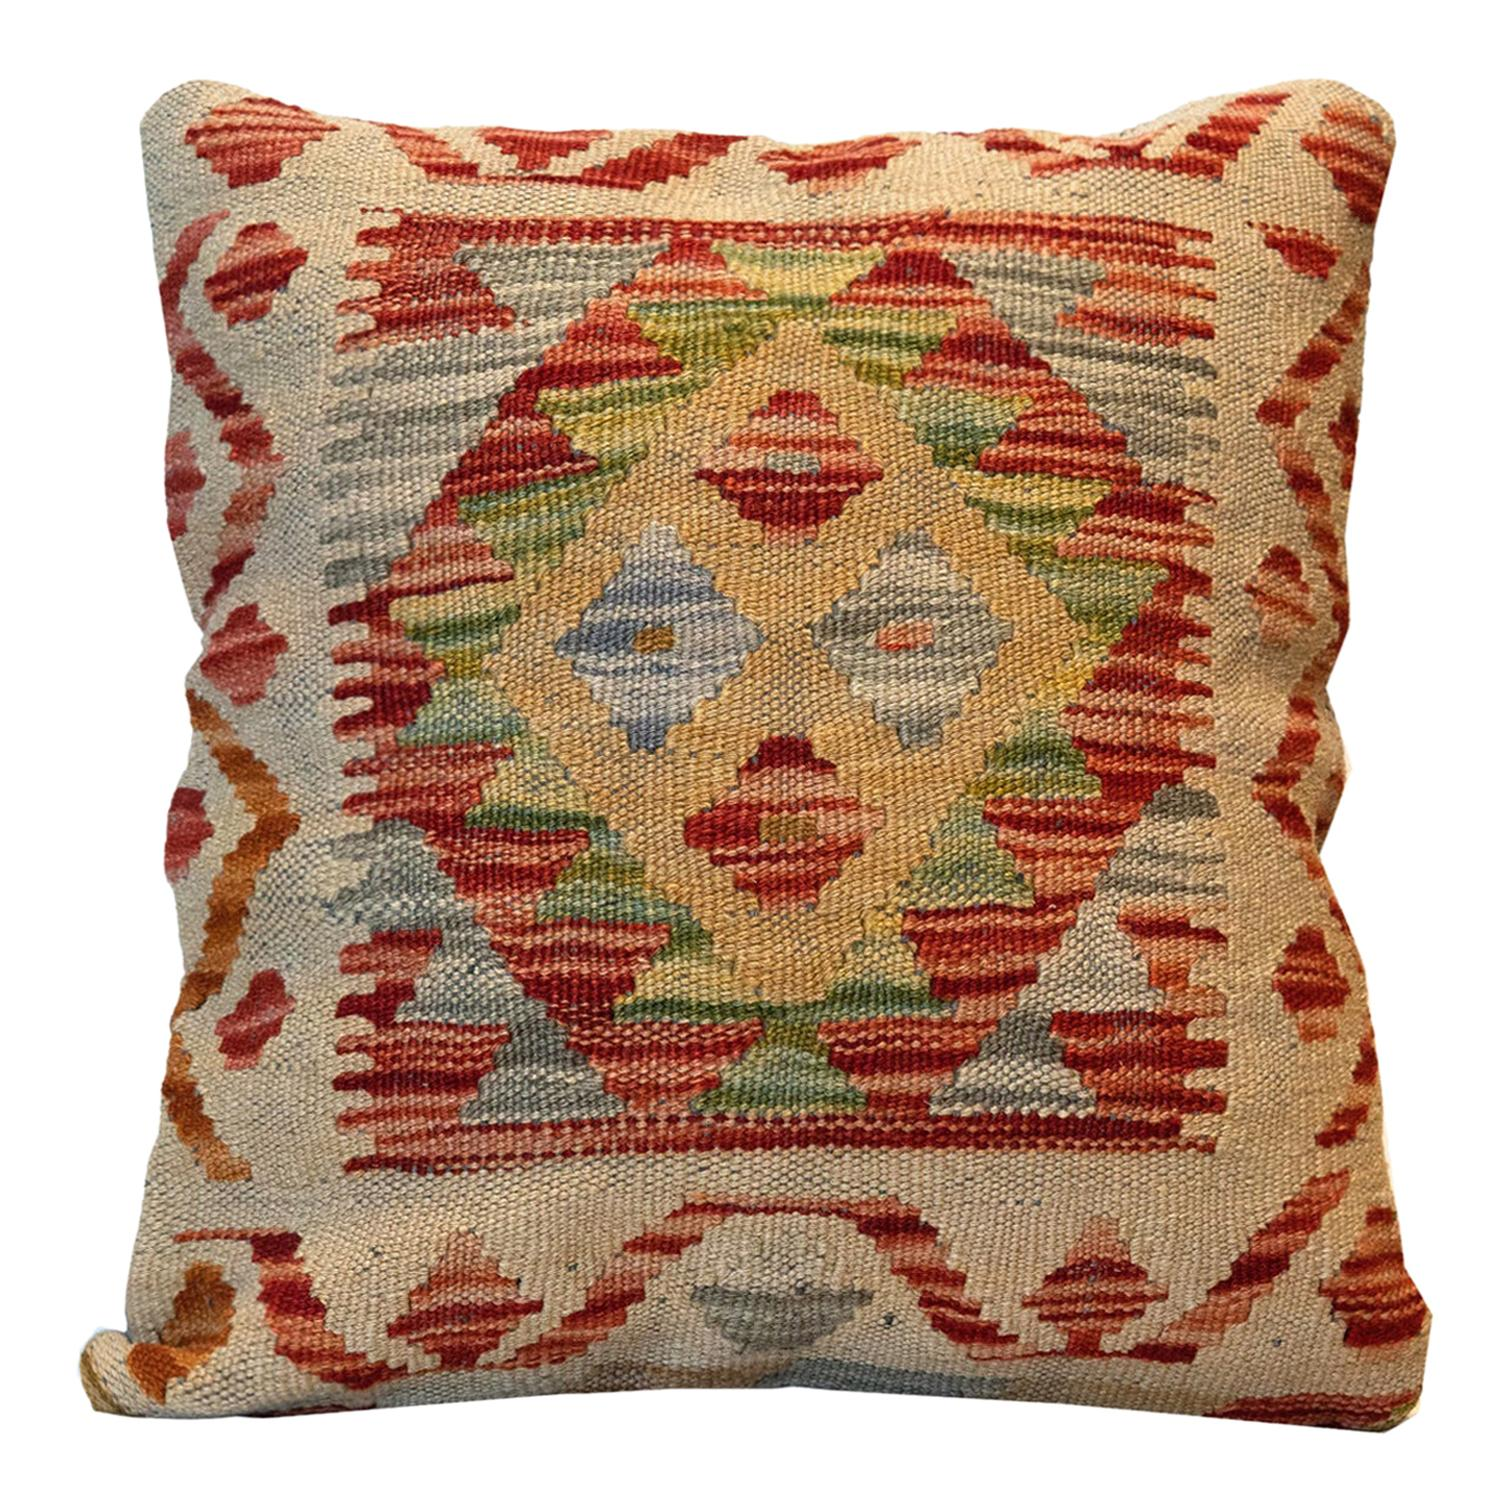 Wool Kilim Cushion Cover, Traditional Pillow Cover Handmade Beige